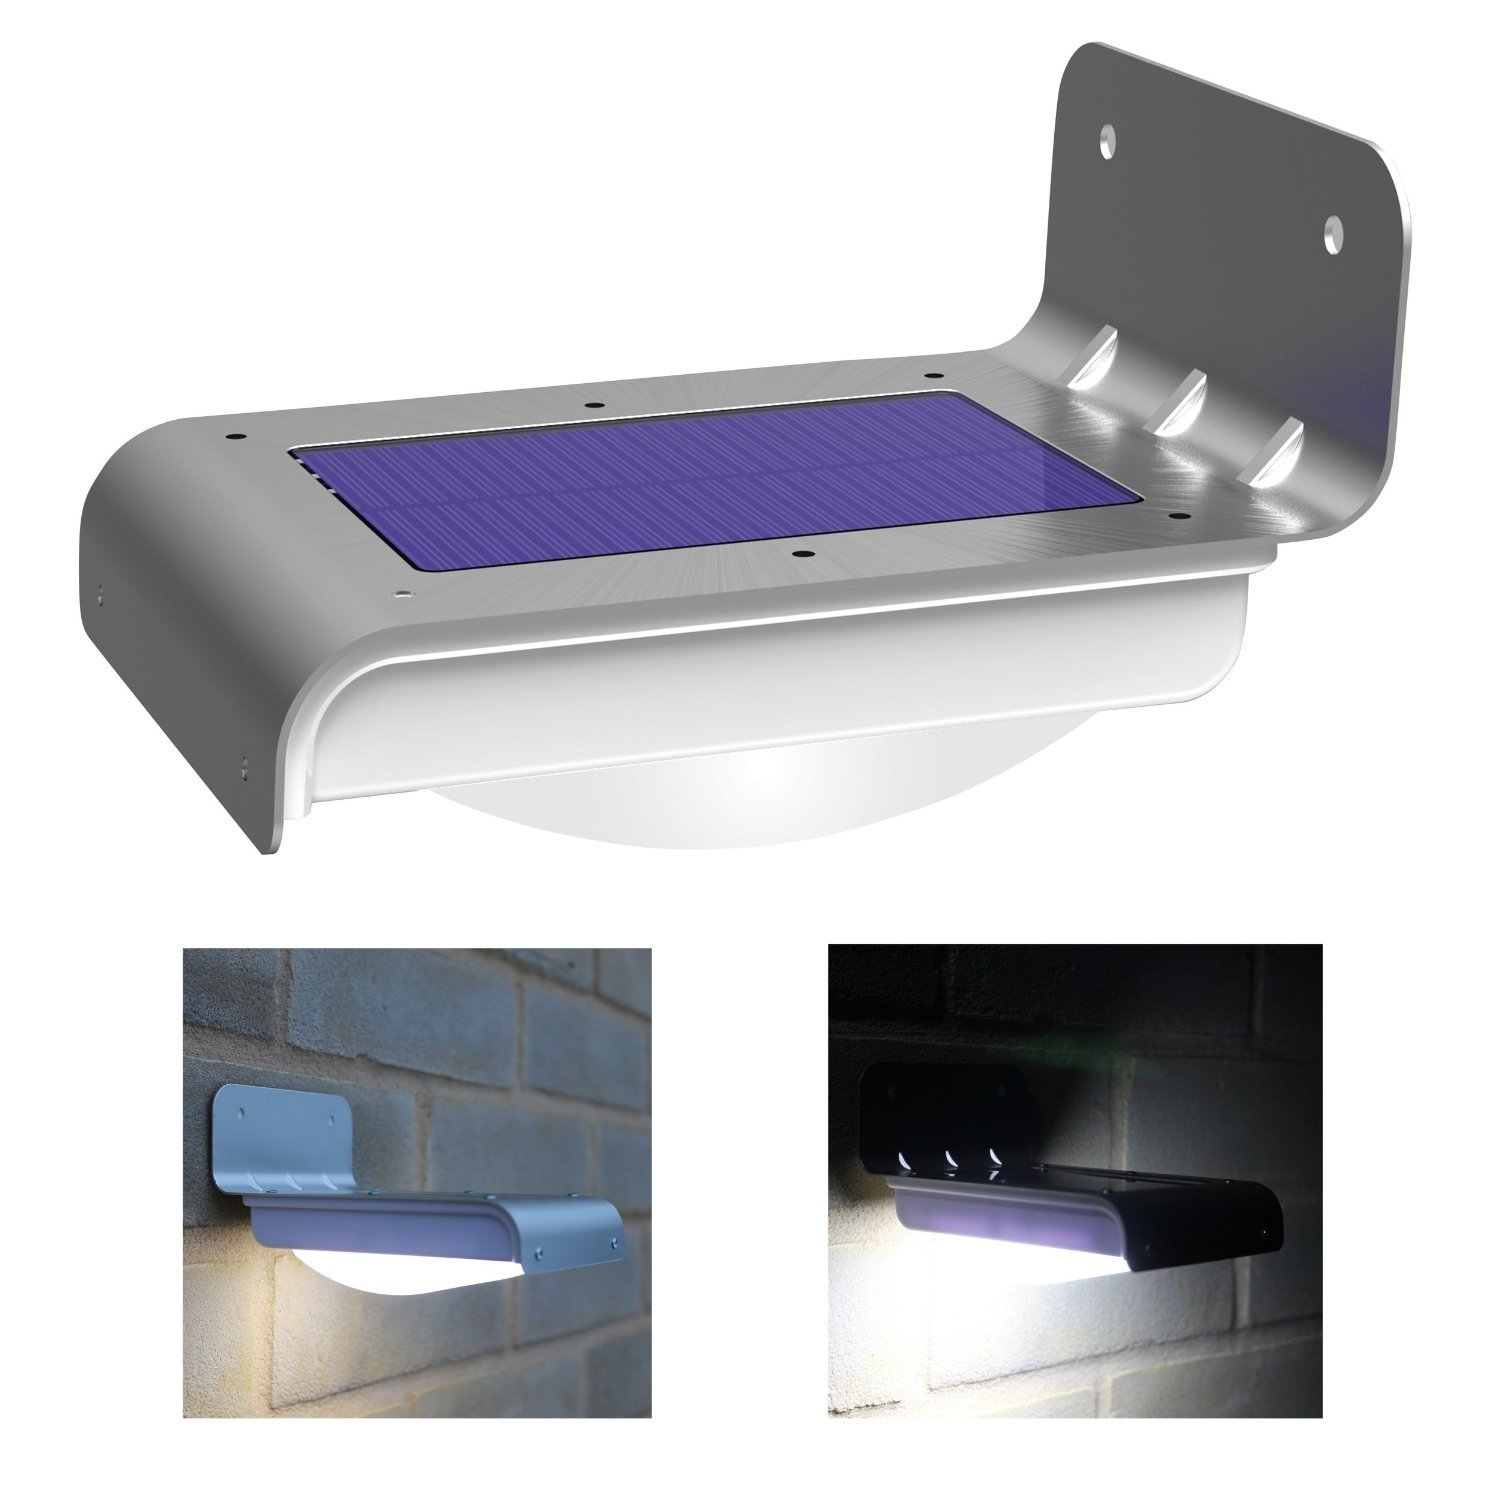 Excluss solar wall security light outdoor lighting thumbnails aloadofball Image collections